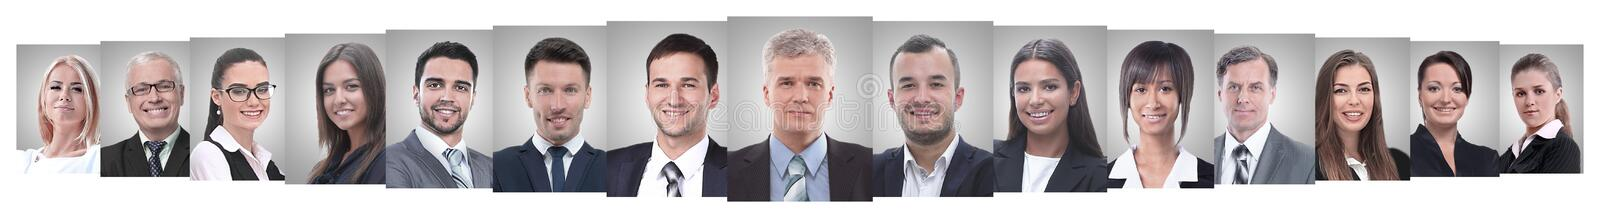 Panoramic collage of portraits of successful employees. Business concept royalty free stock images